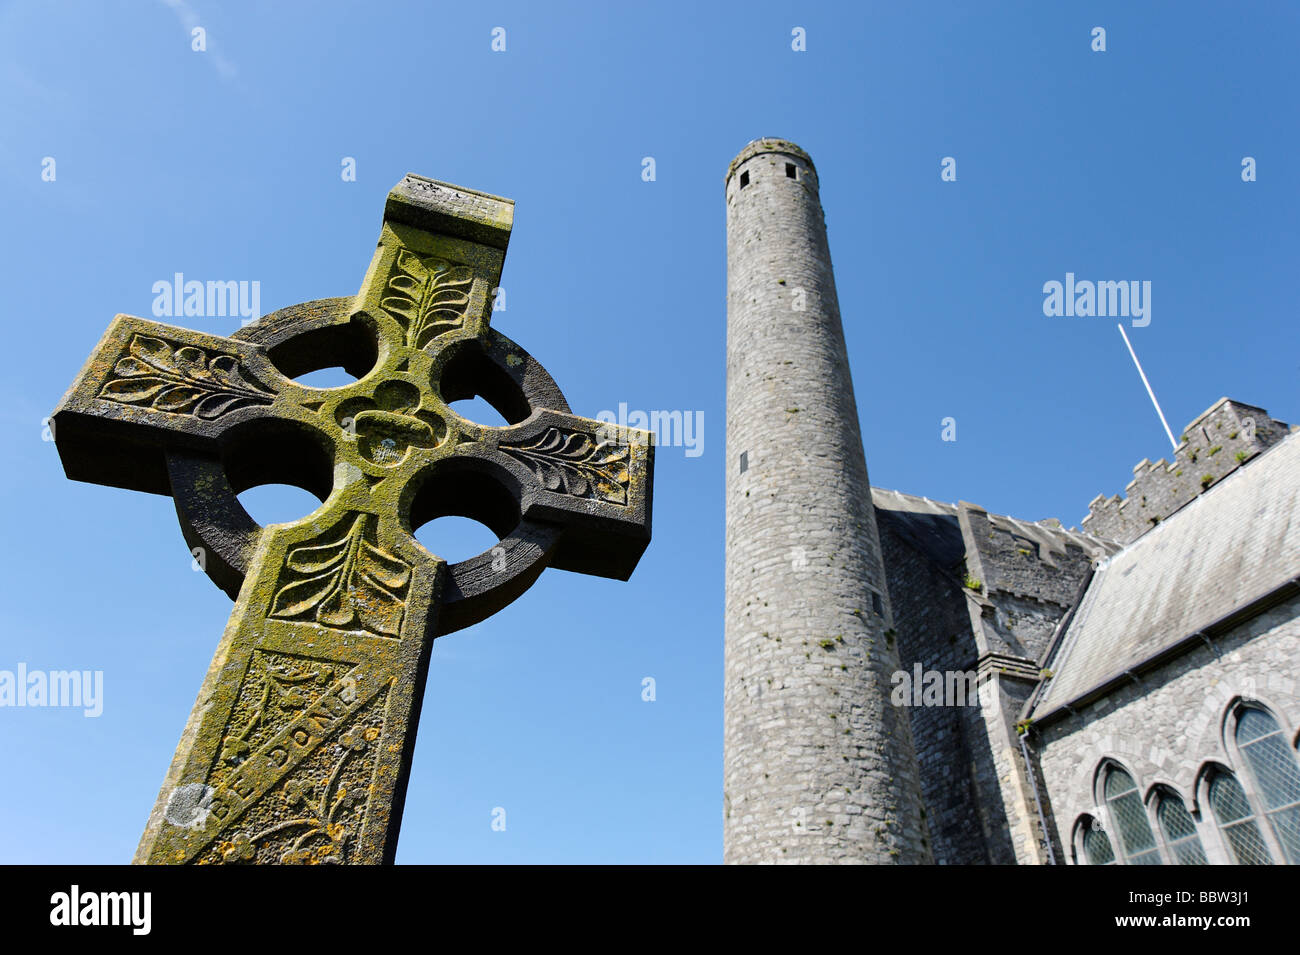 Celtic cross in front of Saint Canices cathedral and tower in Kilkenny city Southern Ireland - Stock Image